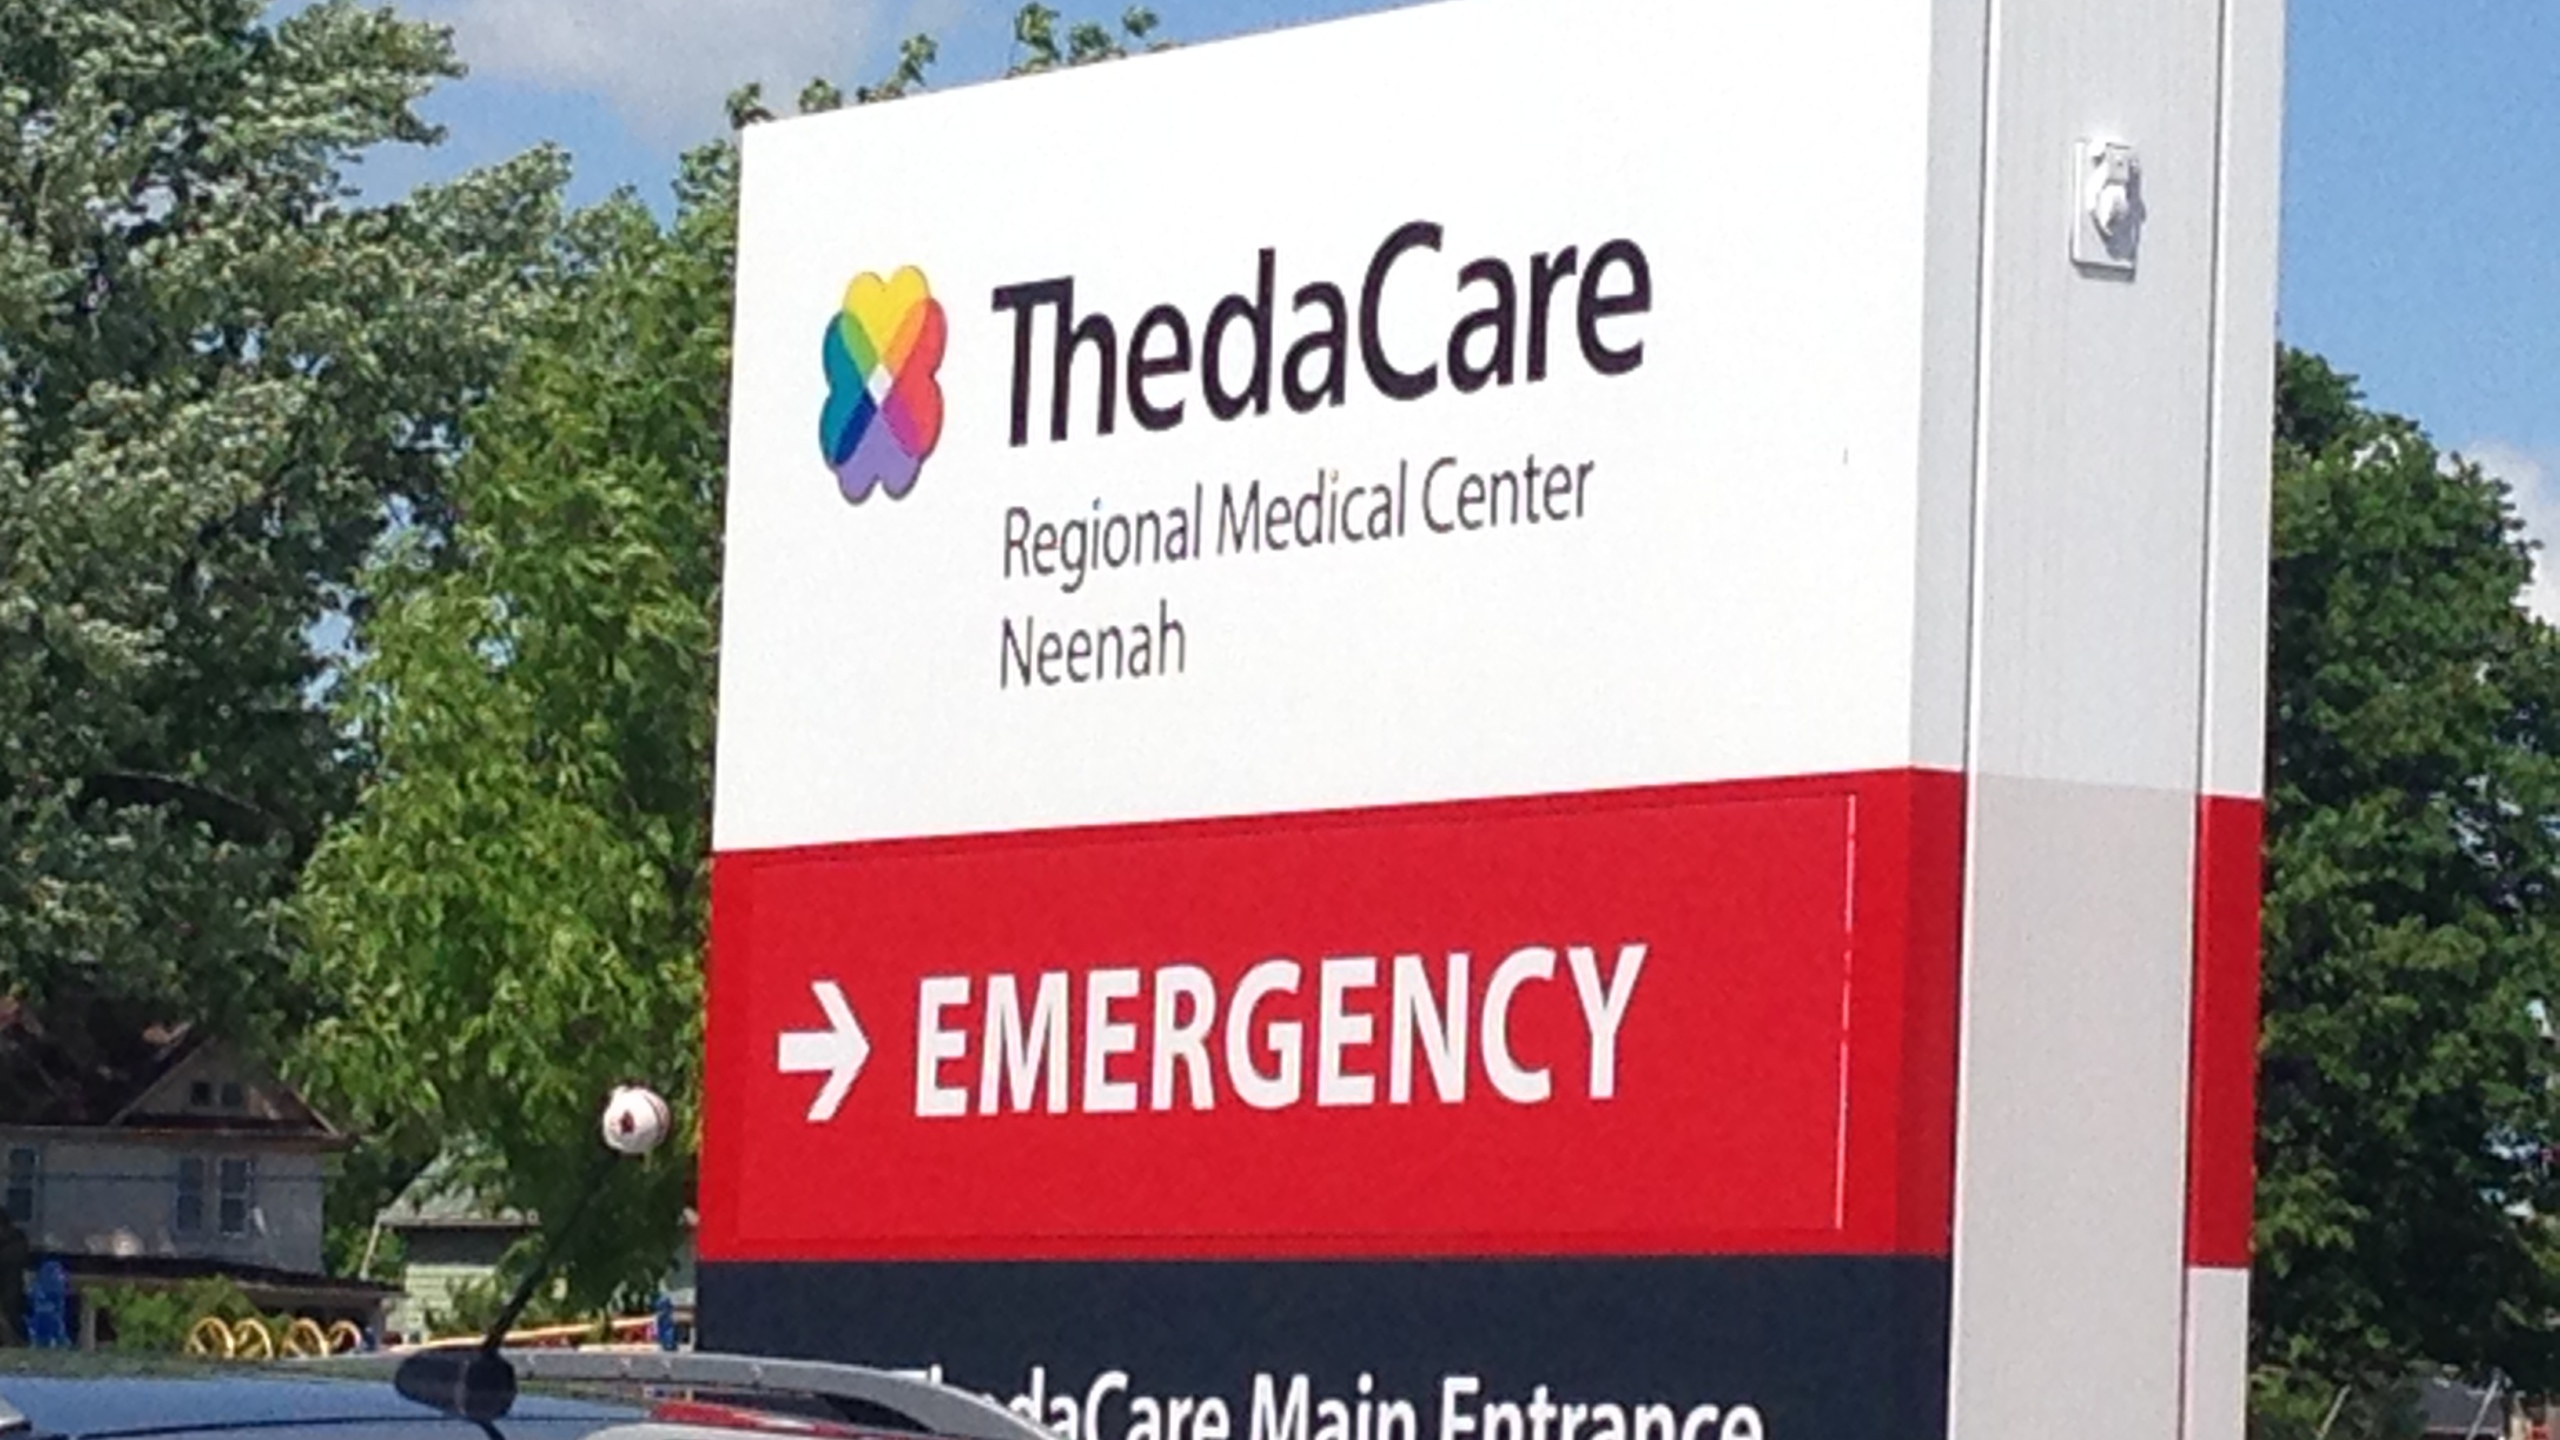 Neenah ThedaCare Regional Medical Center